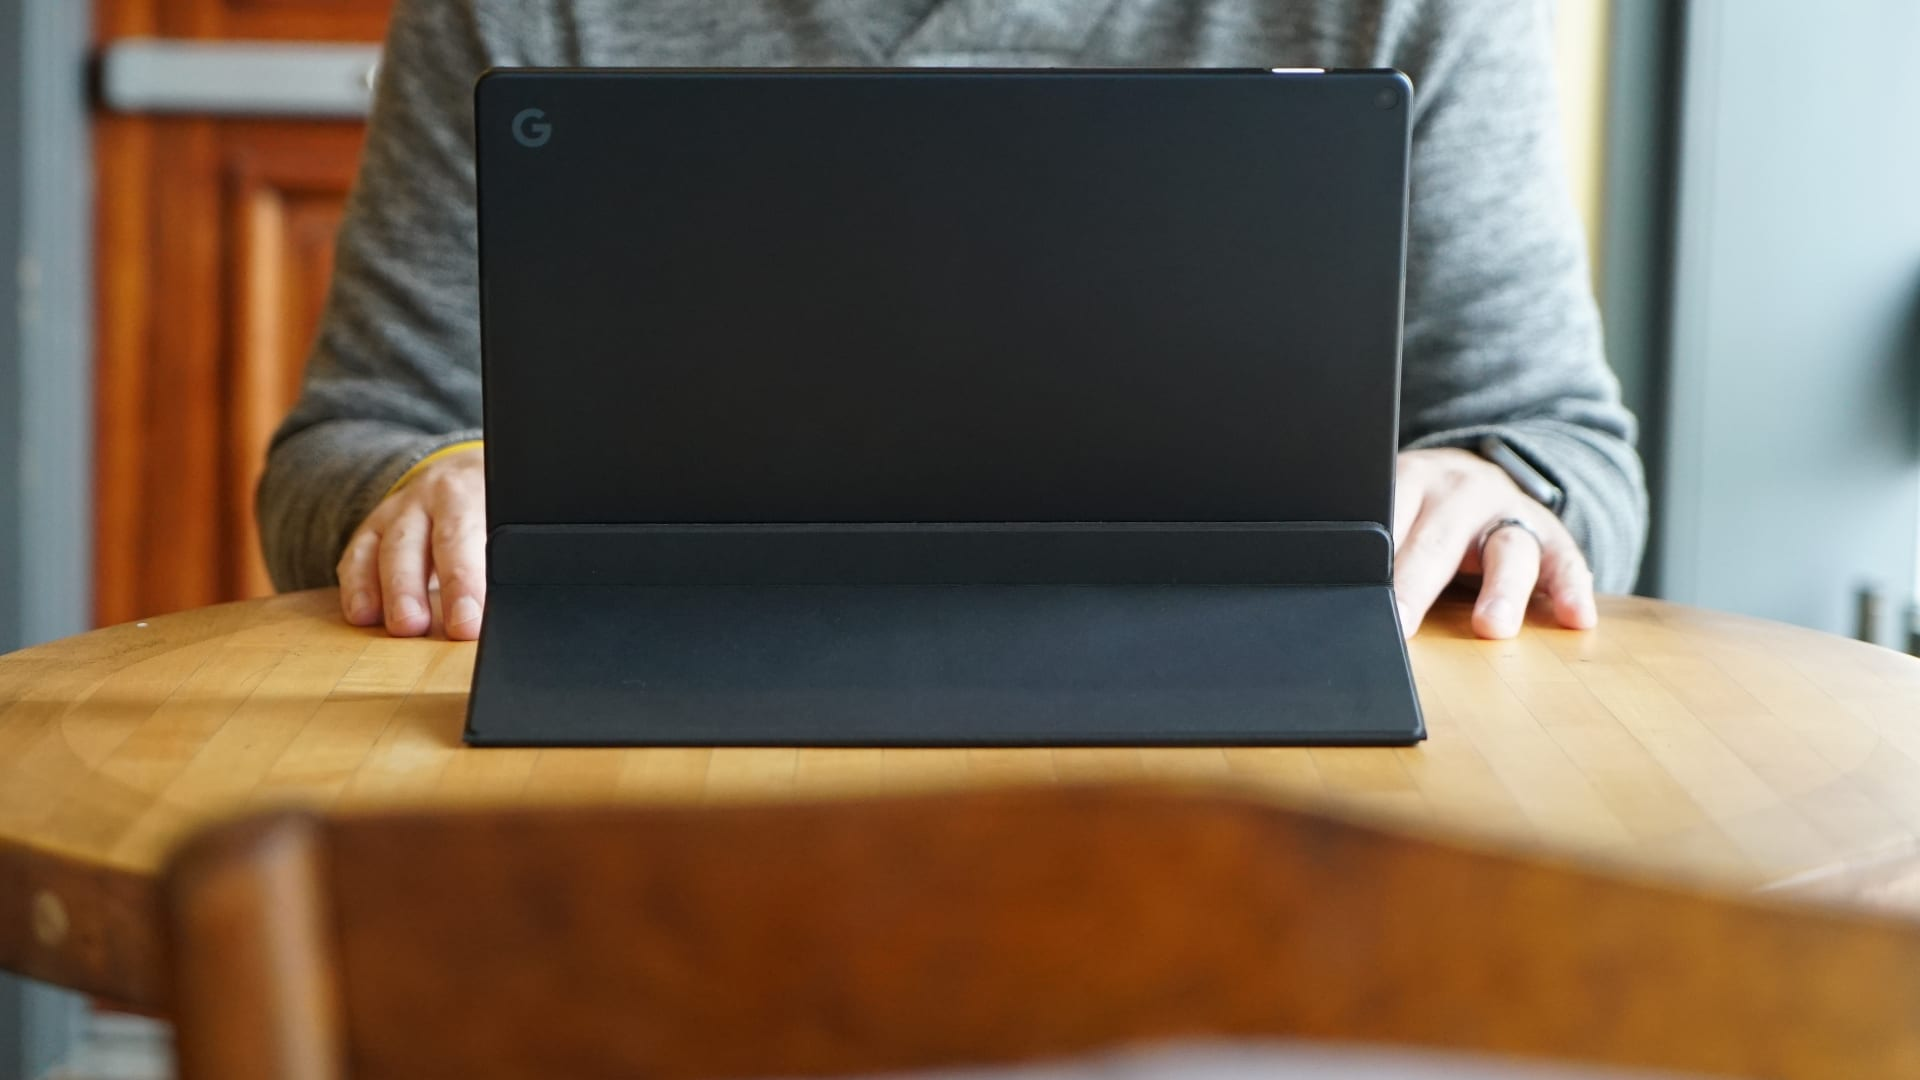 Second Chance: Buy the Pixel Slate w/Keyboard and save up to $450